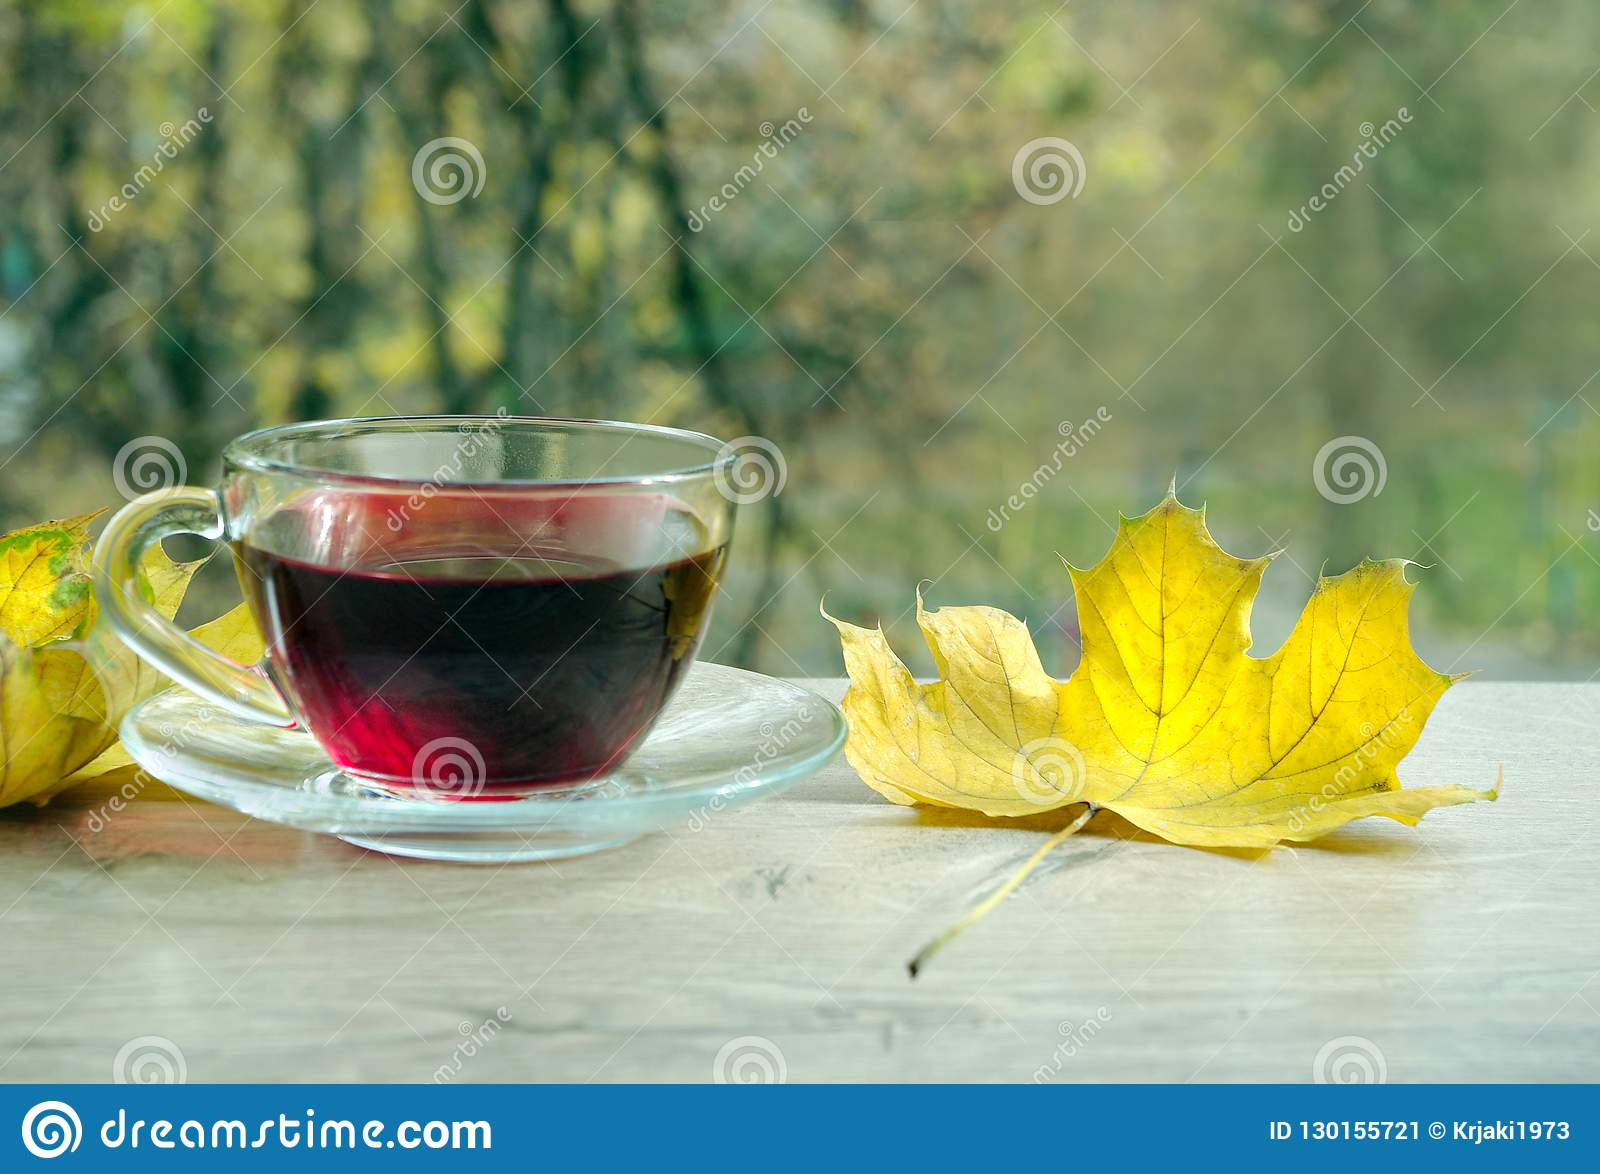 Cup Of Hibiscus Tea And Yellow Leaves On A Wooden Table Cup With